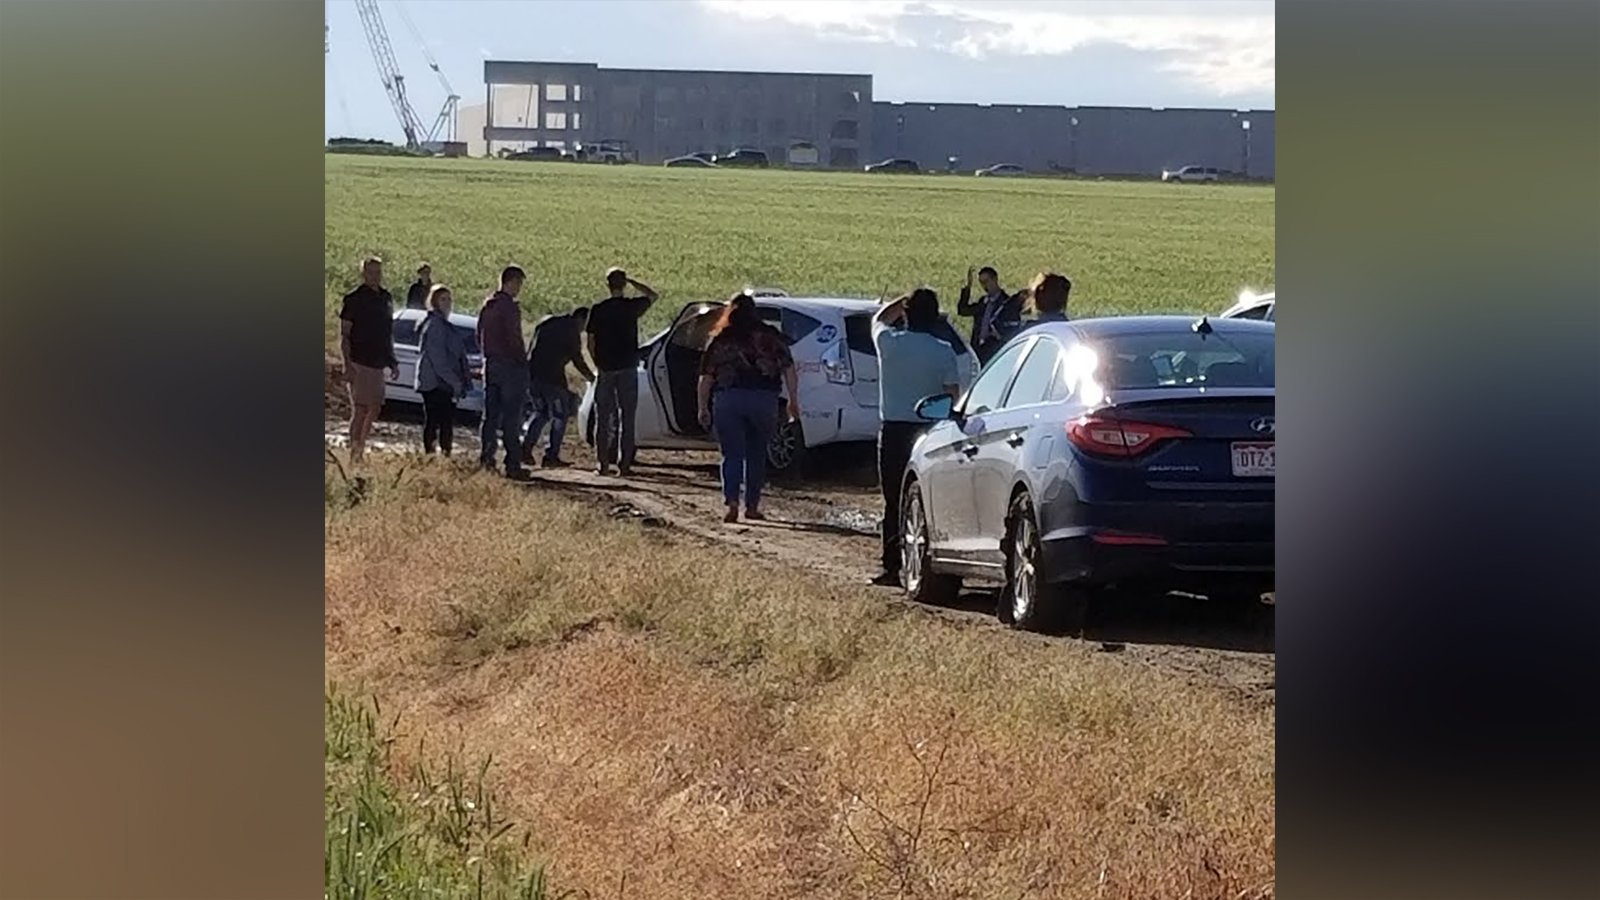 Nearly 100 drivers followed a Google Maps detour — and ended up stuck in an empty field